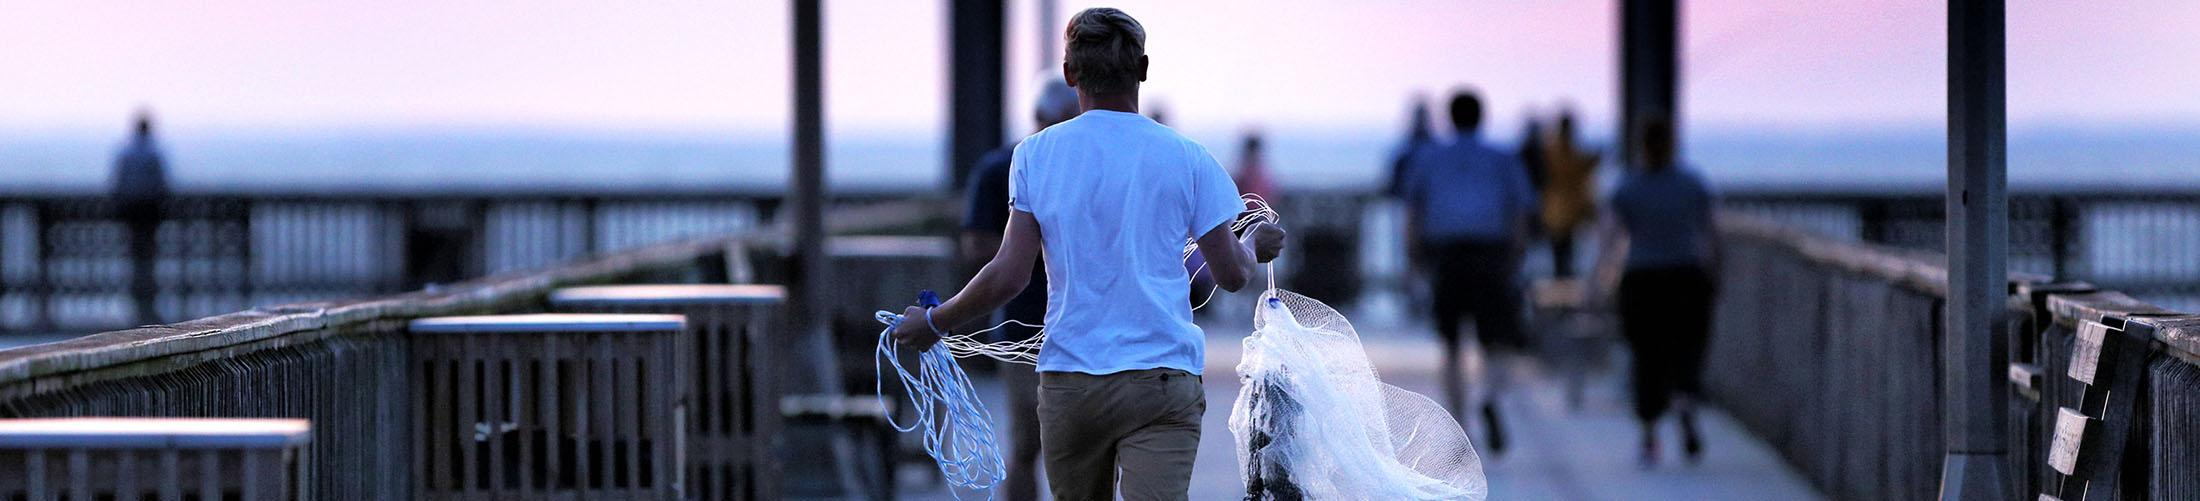 Male carrying cast nets on Fair Hope Pier